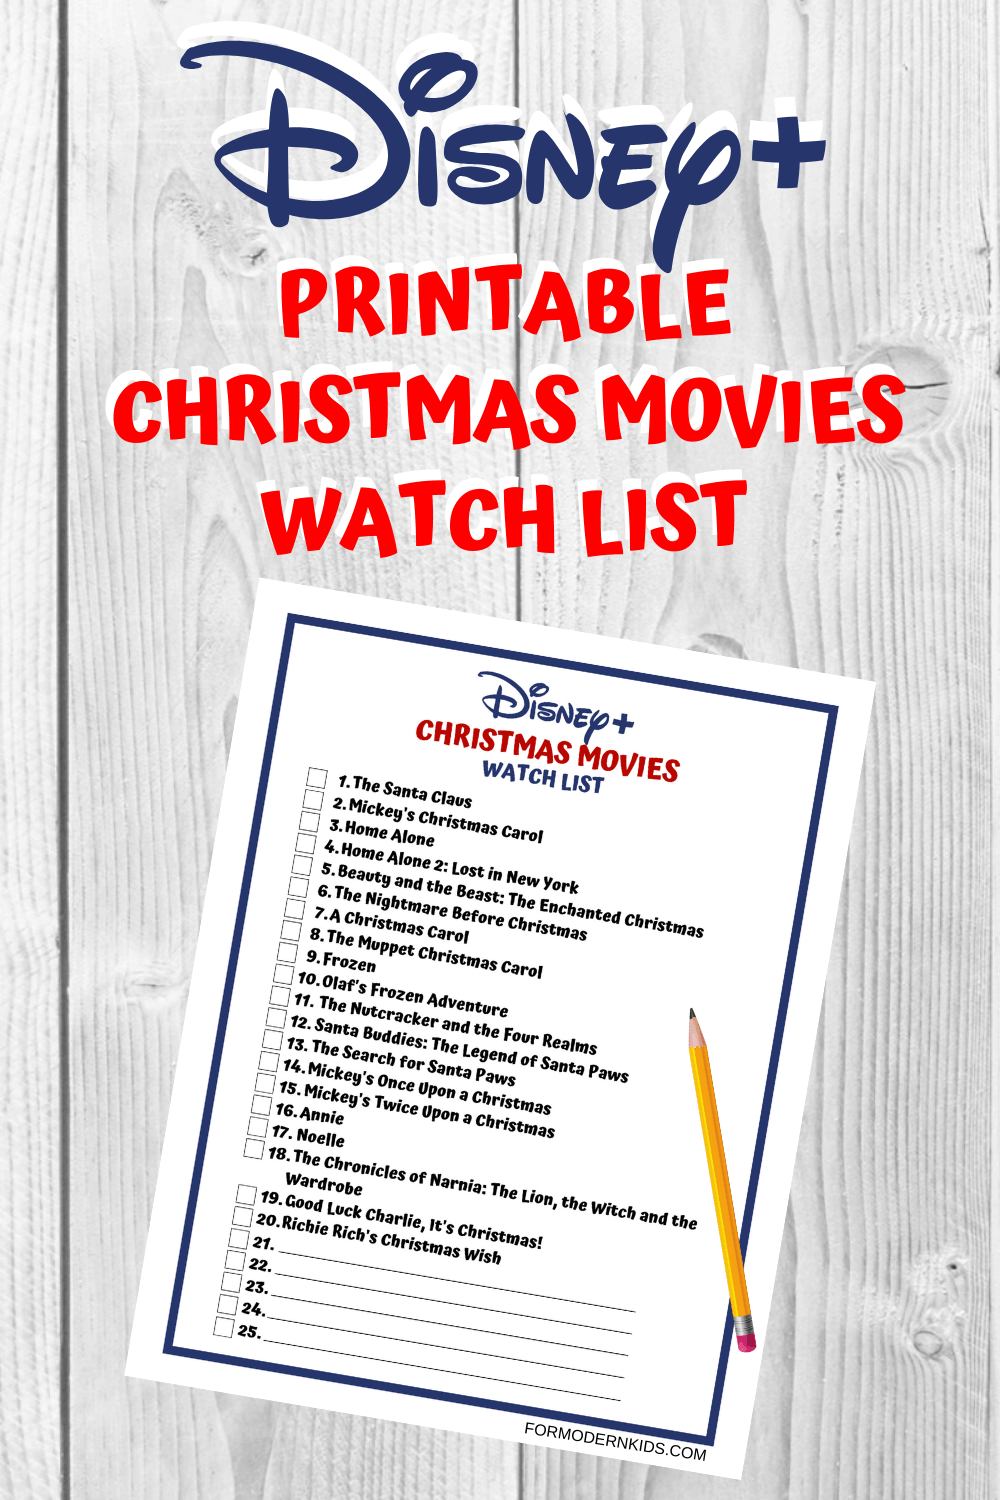 All the Best Christmas Movies on Disney Plus (FREE